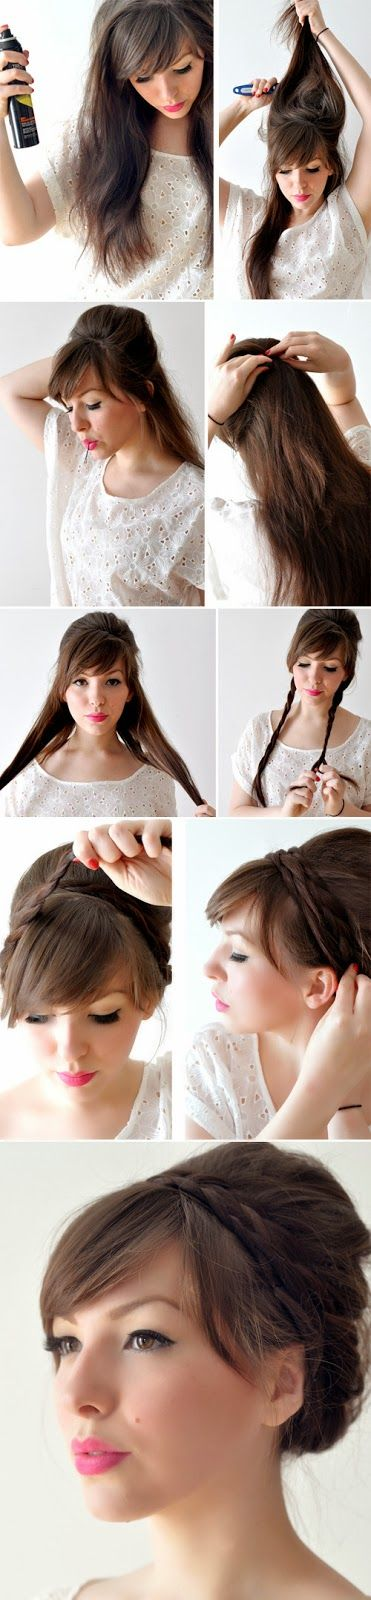 http://hairstyles-womens.blogspot.com/2014/01/braided-updo.html